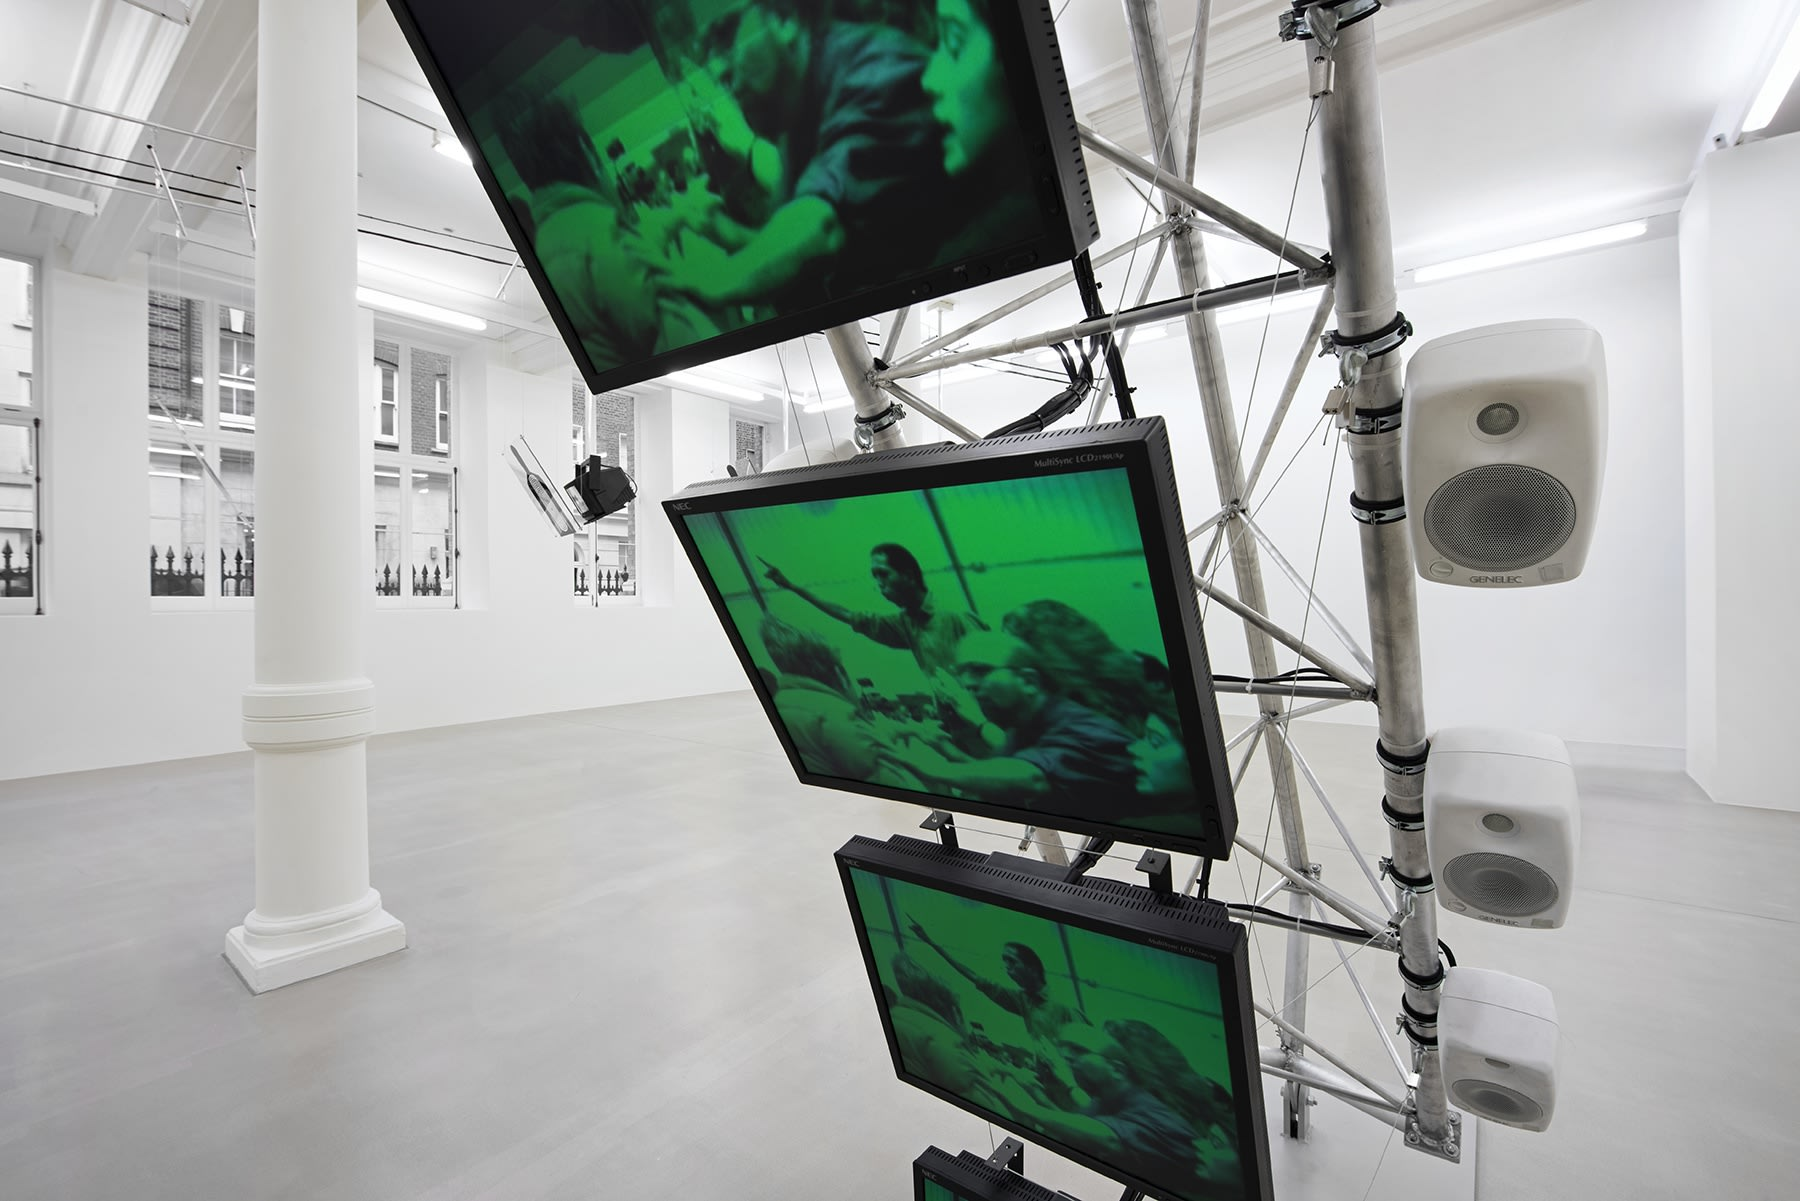 A close-up of 3 monitors stacked vertically displaying a green image of a crowd.